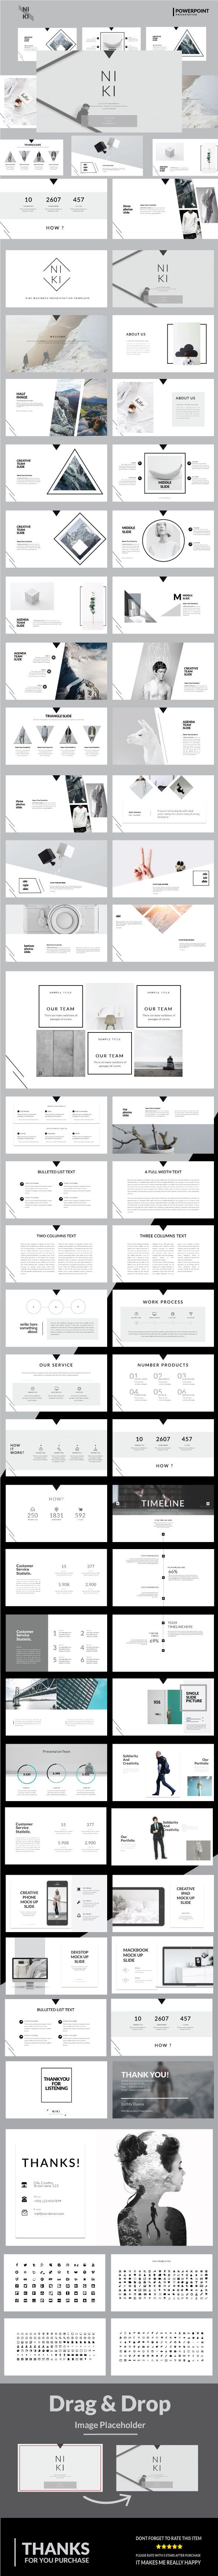 Niki Keynote Presentation Templates - Business Keynote Templates